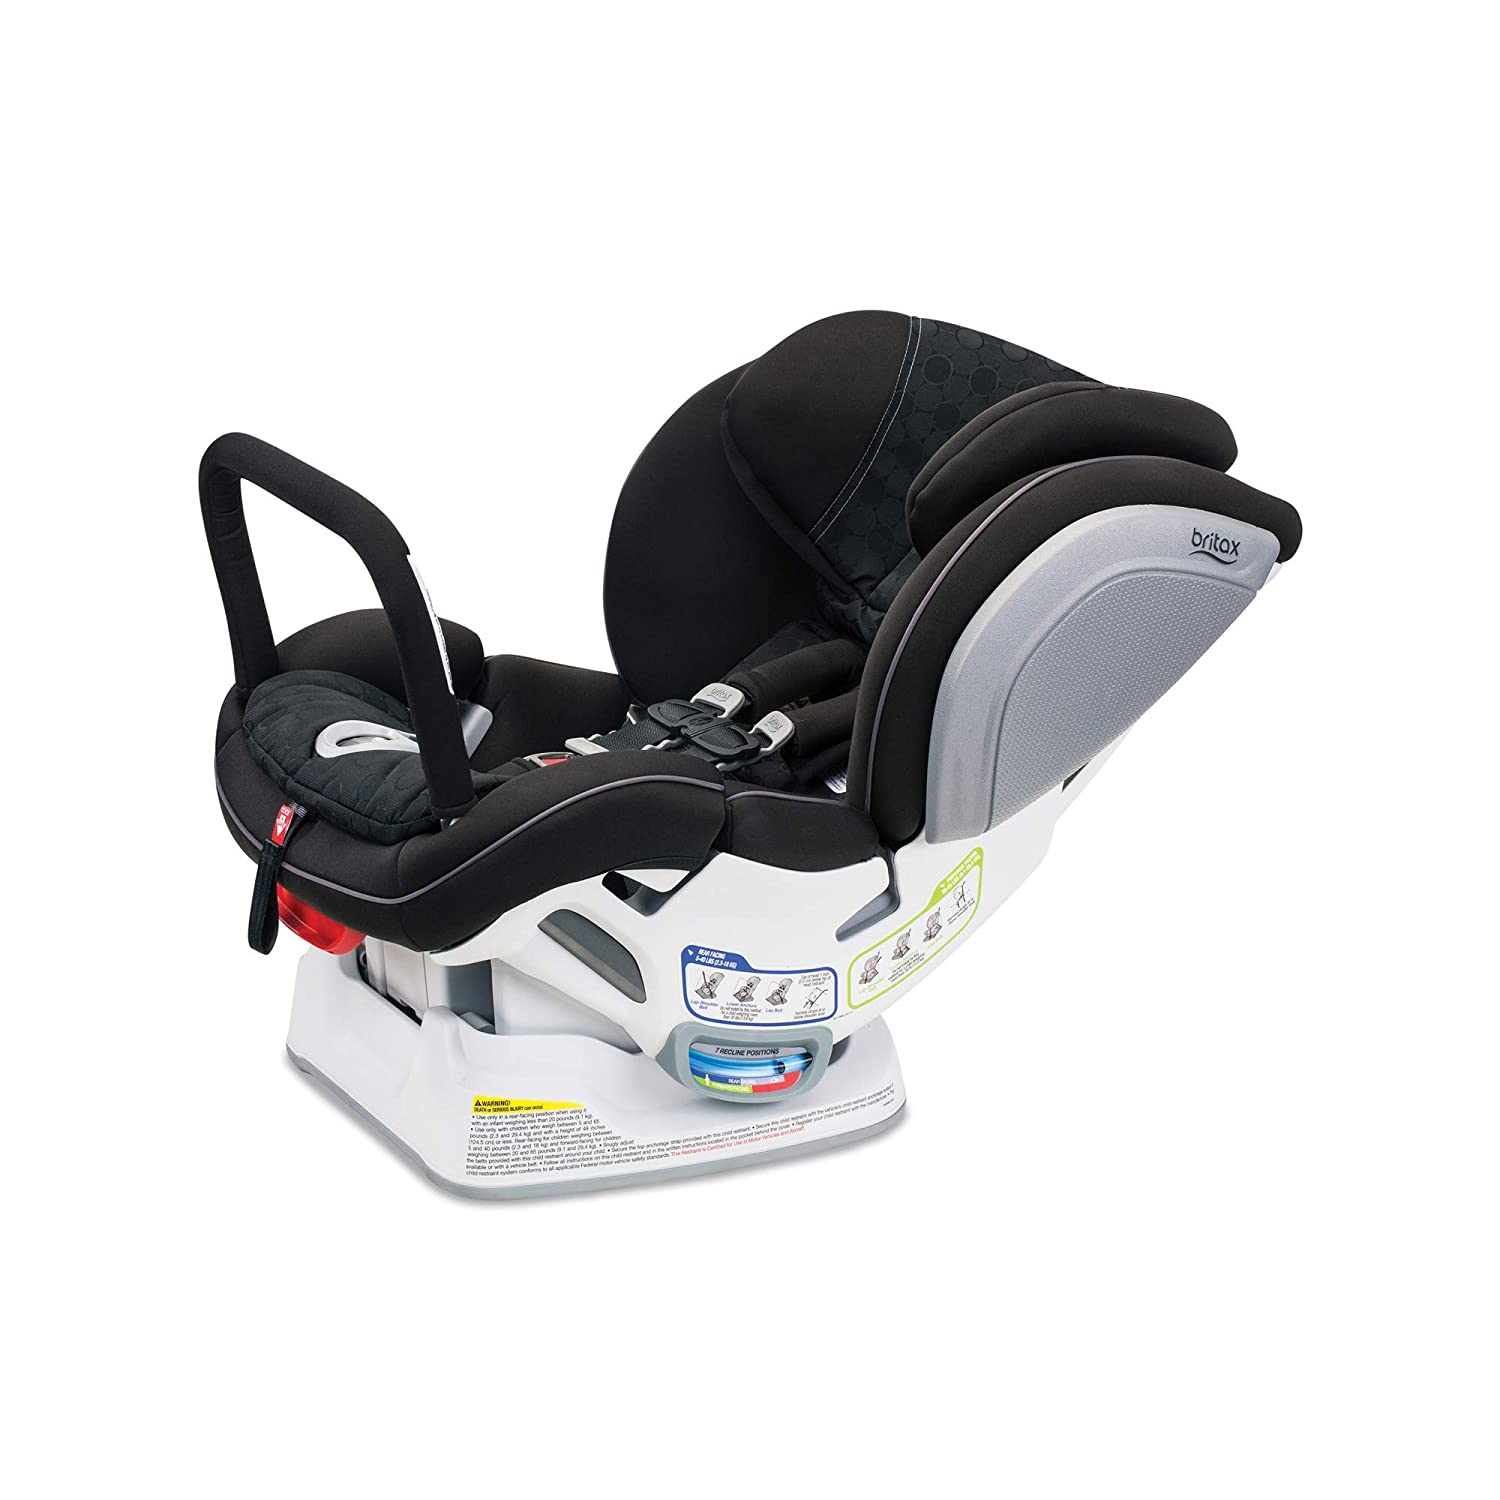 Britax Advocate ClickTight Anti-Rebound Bar Convertible Car Seat, Circa